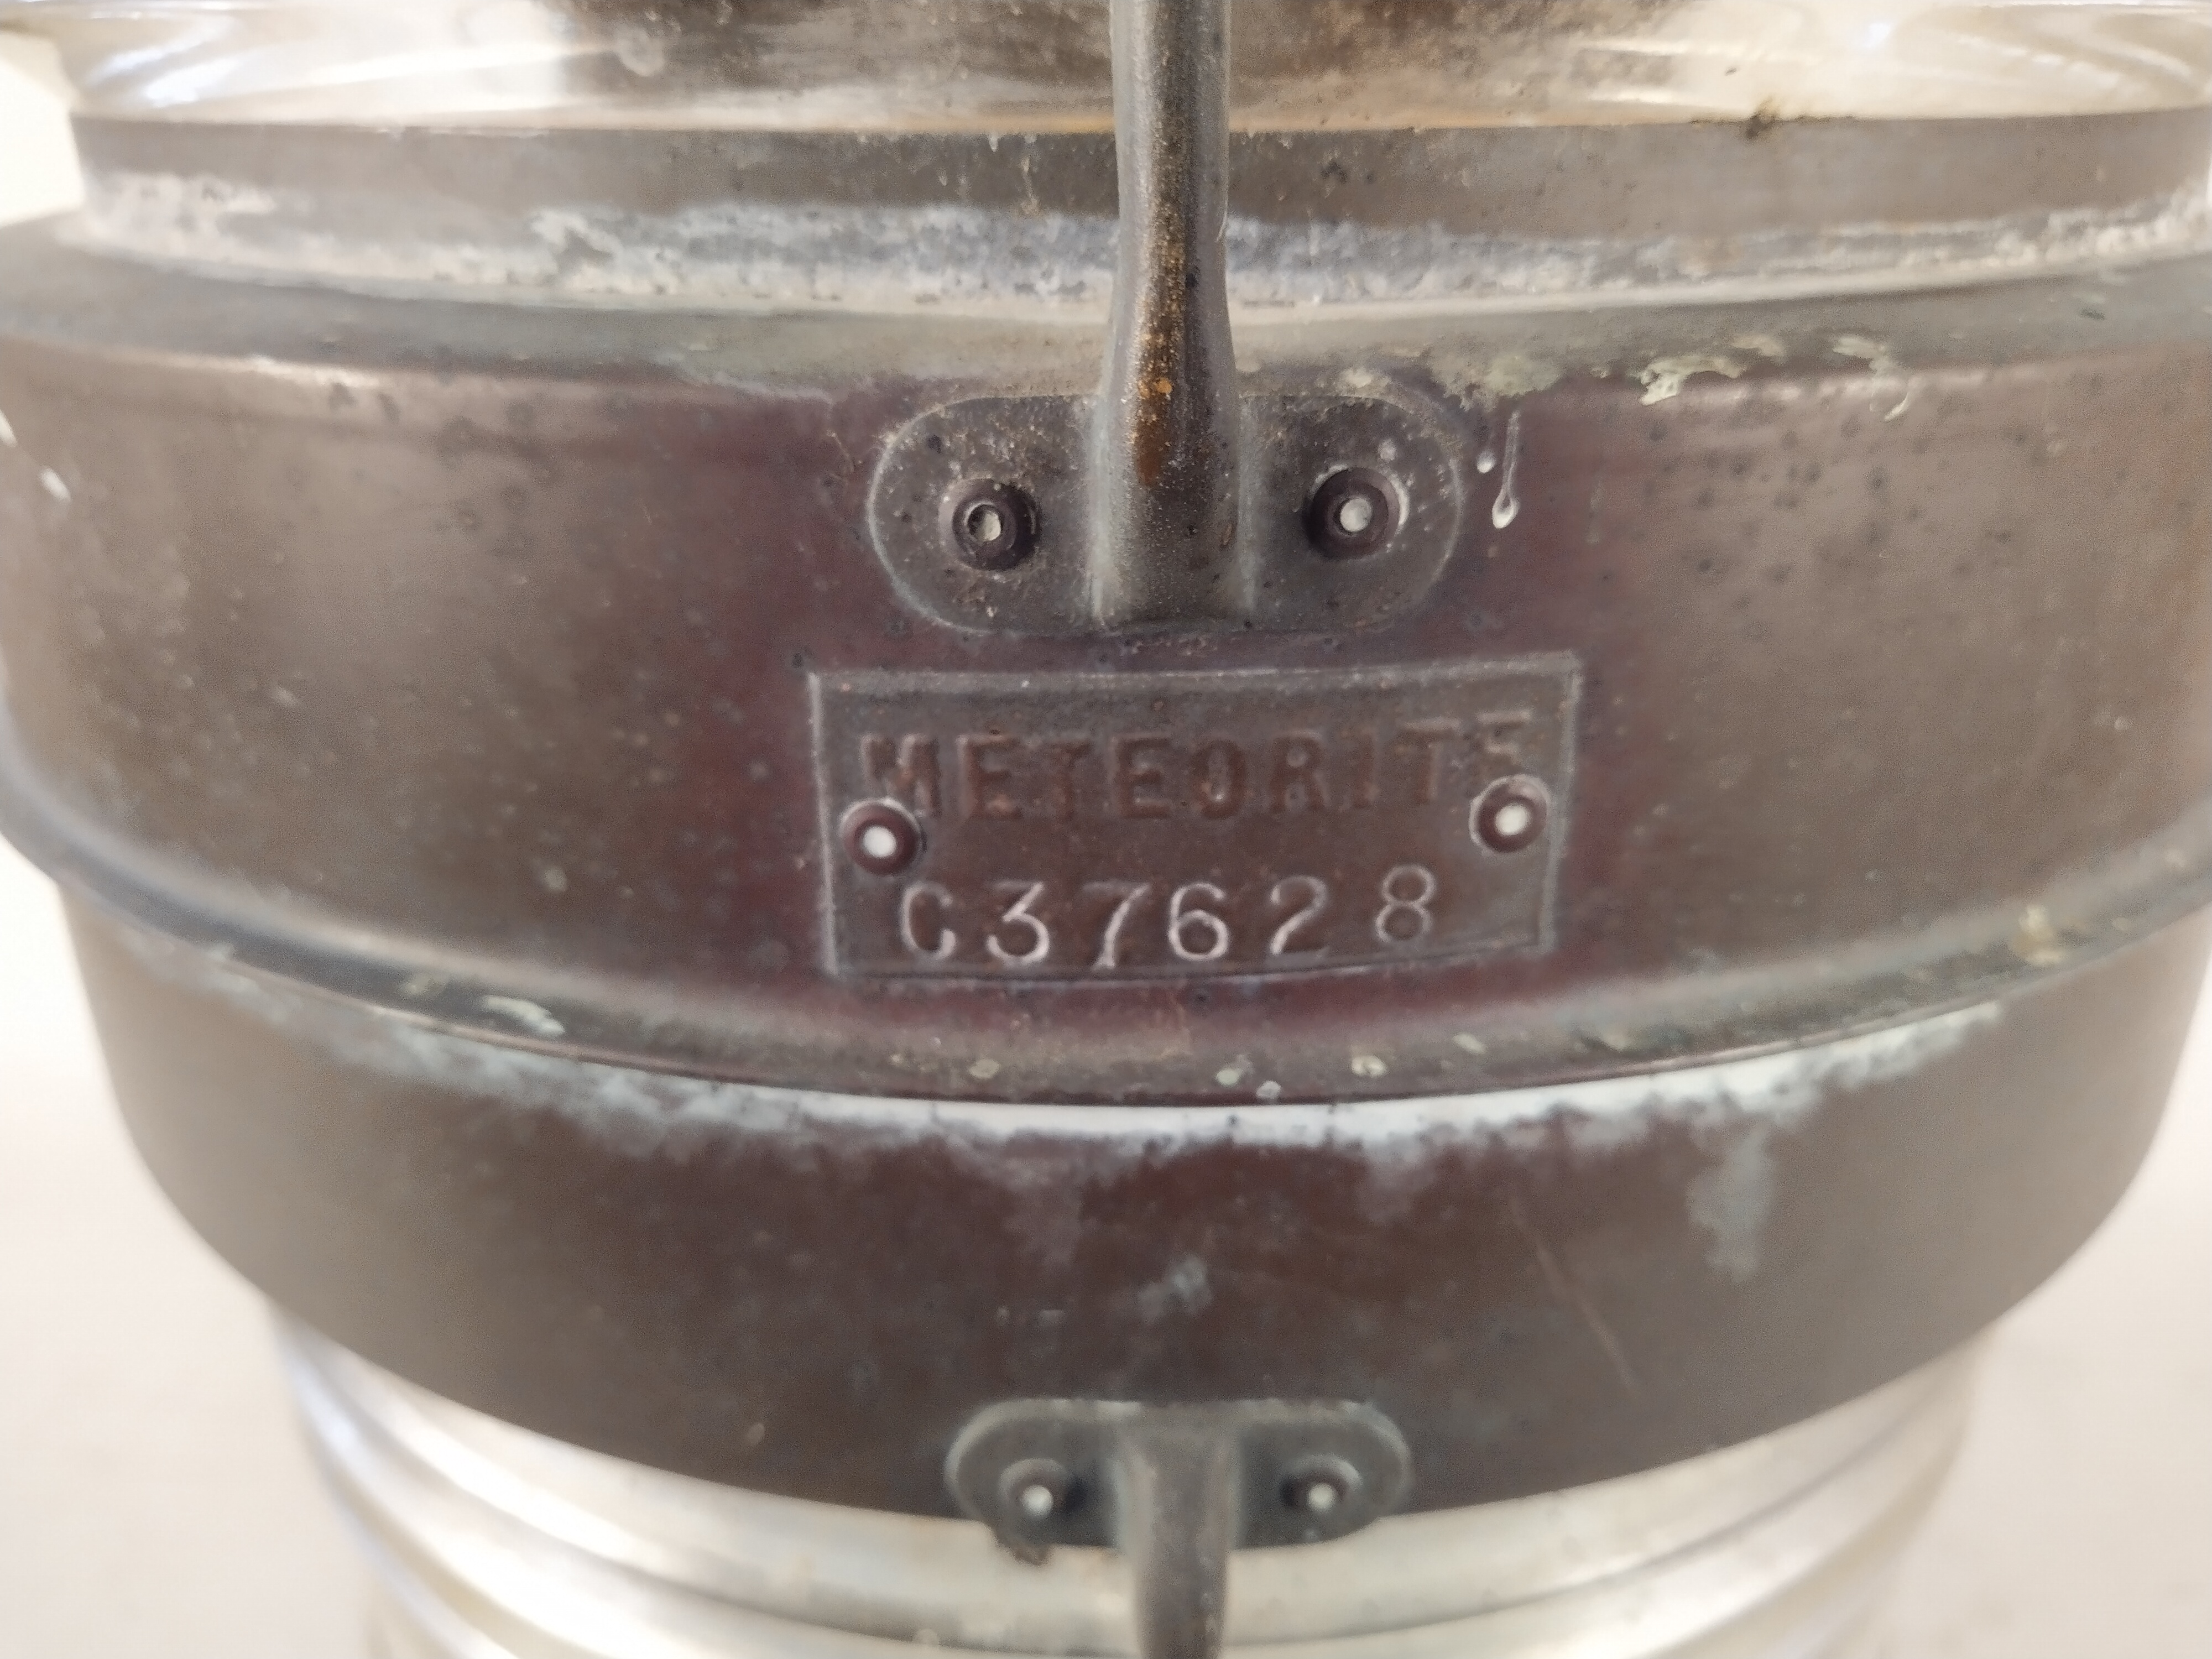 A double masthead copper ships lamp 'Meteorite C37628' - Image 2 of 4